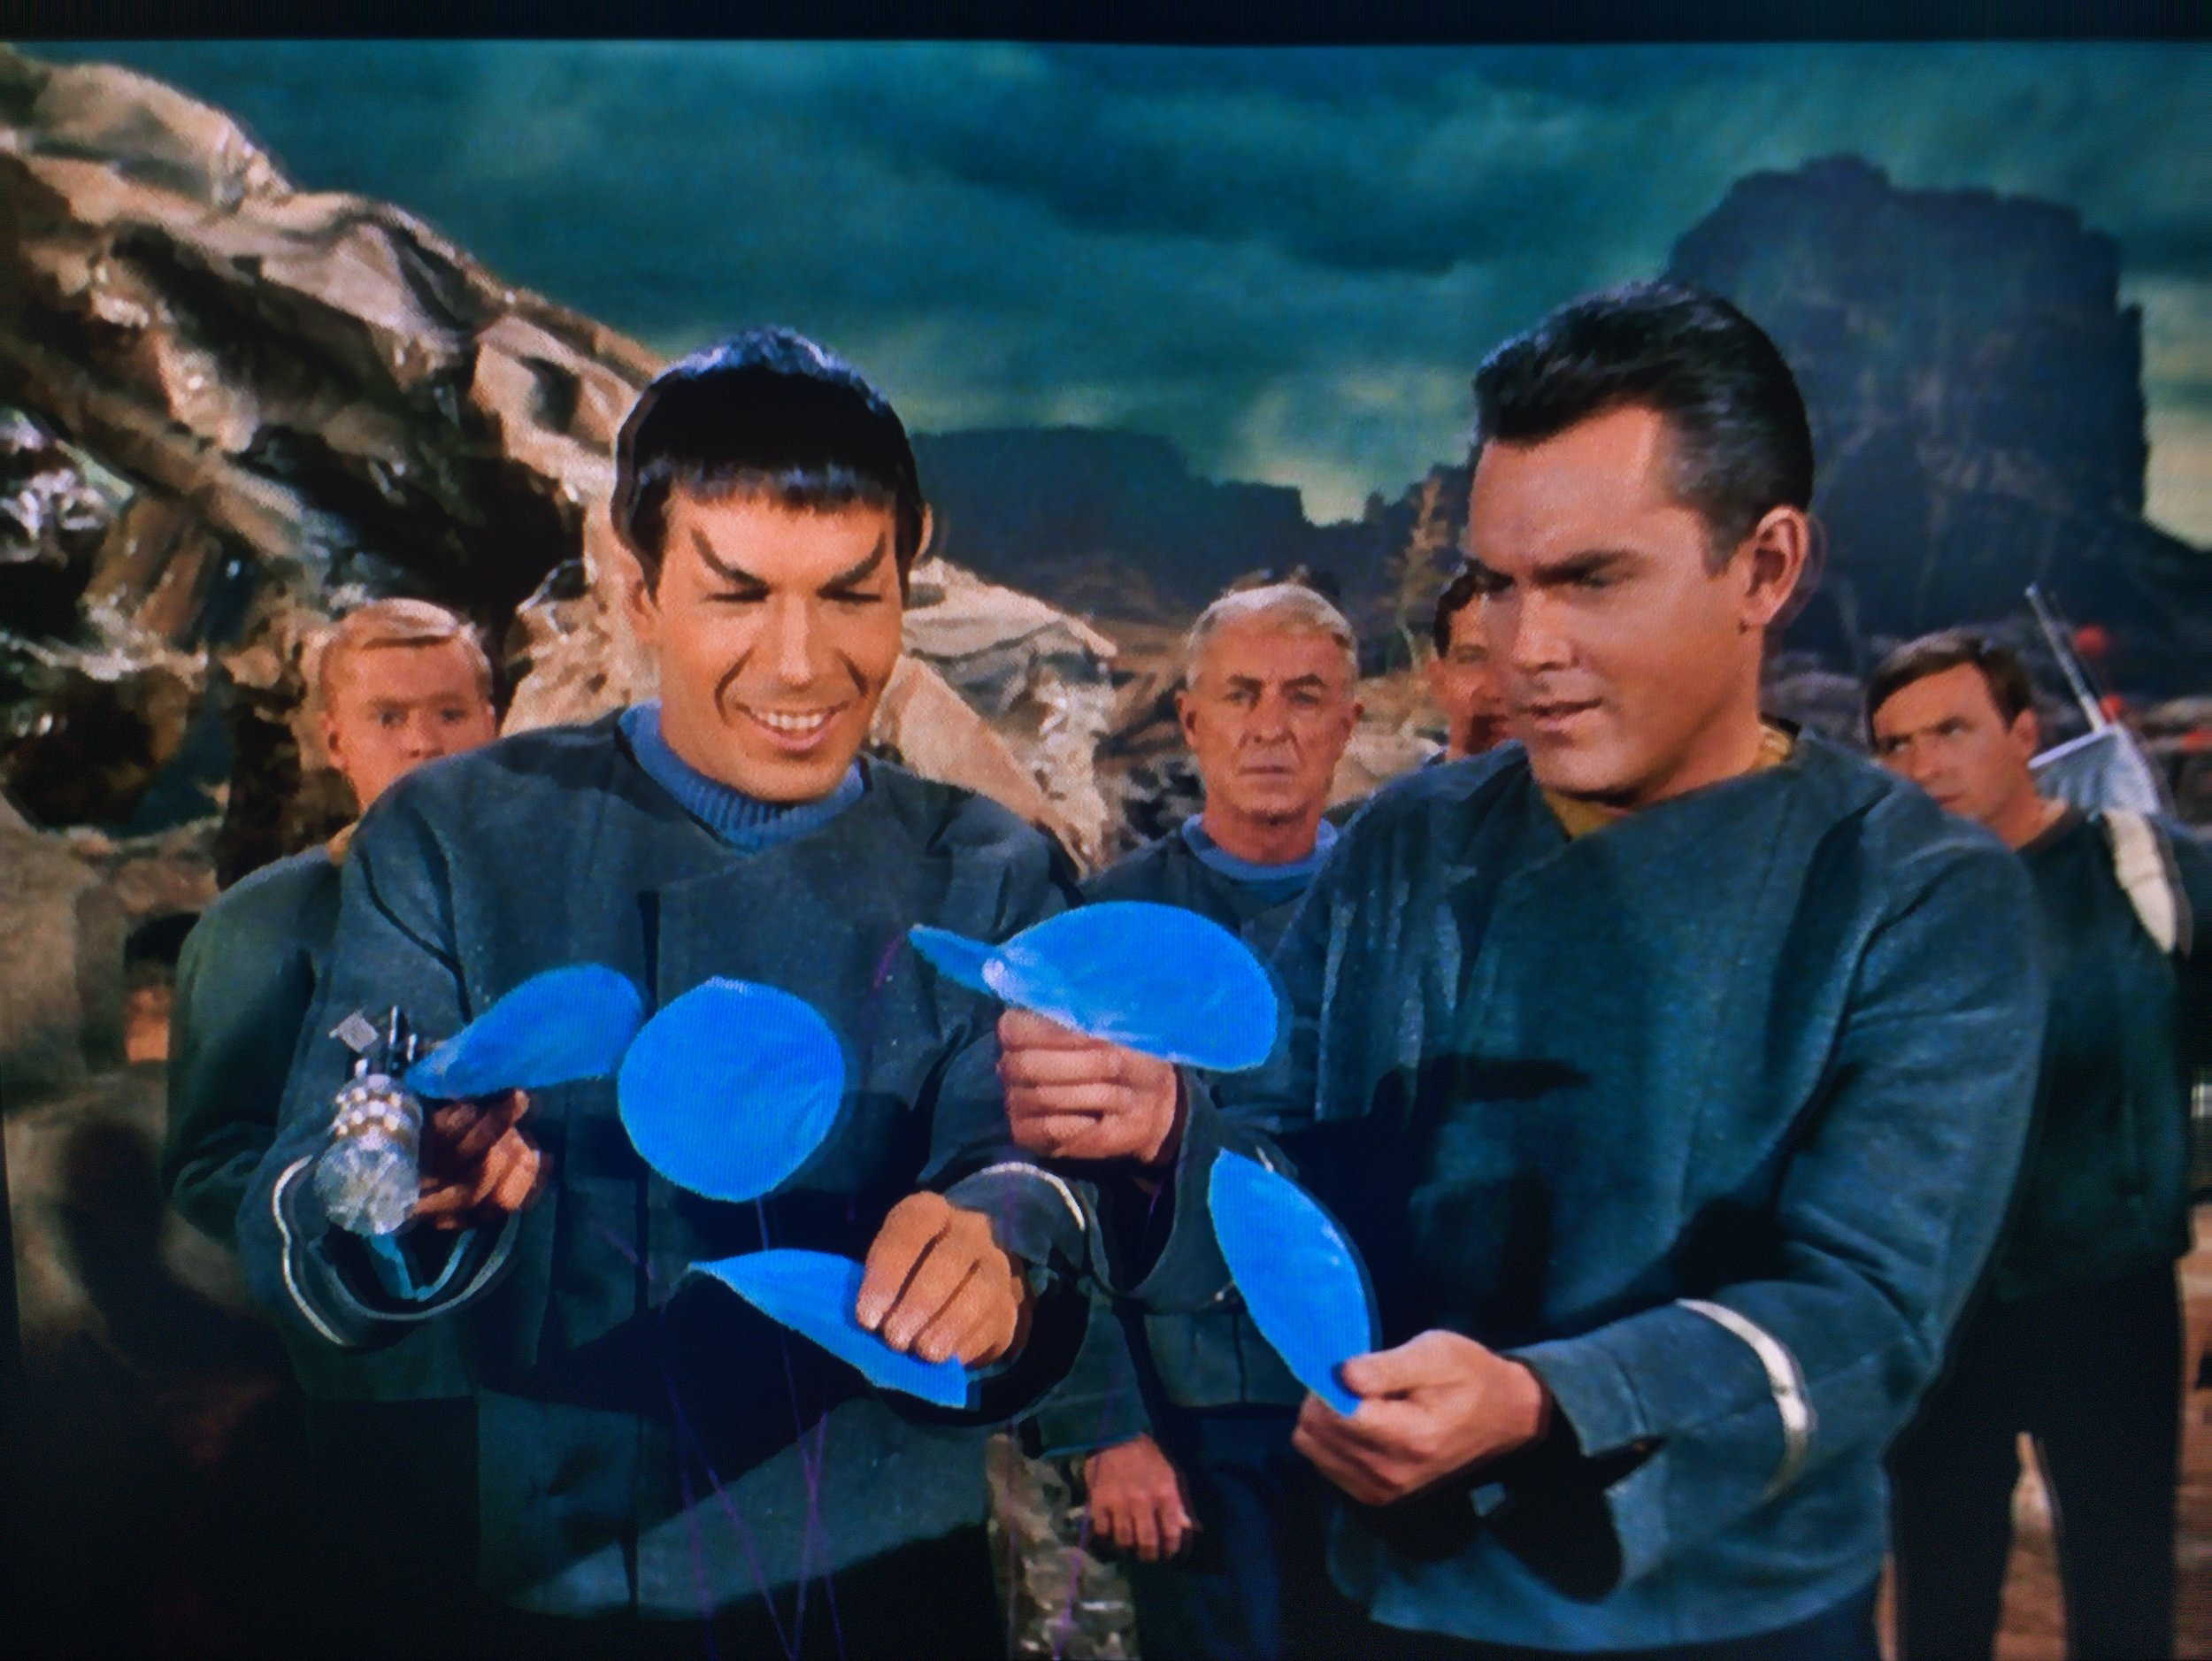 Before Vulcans weren't allowed to express their emotions, even the most banal fake blue foliage would bring such joy to Spock!